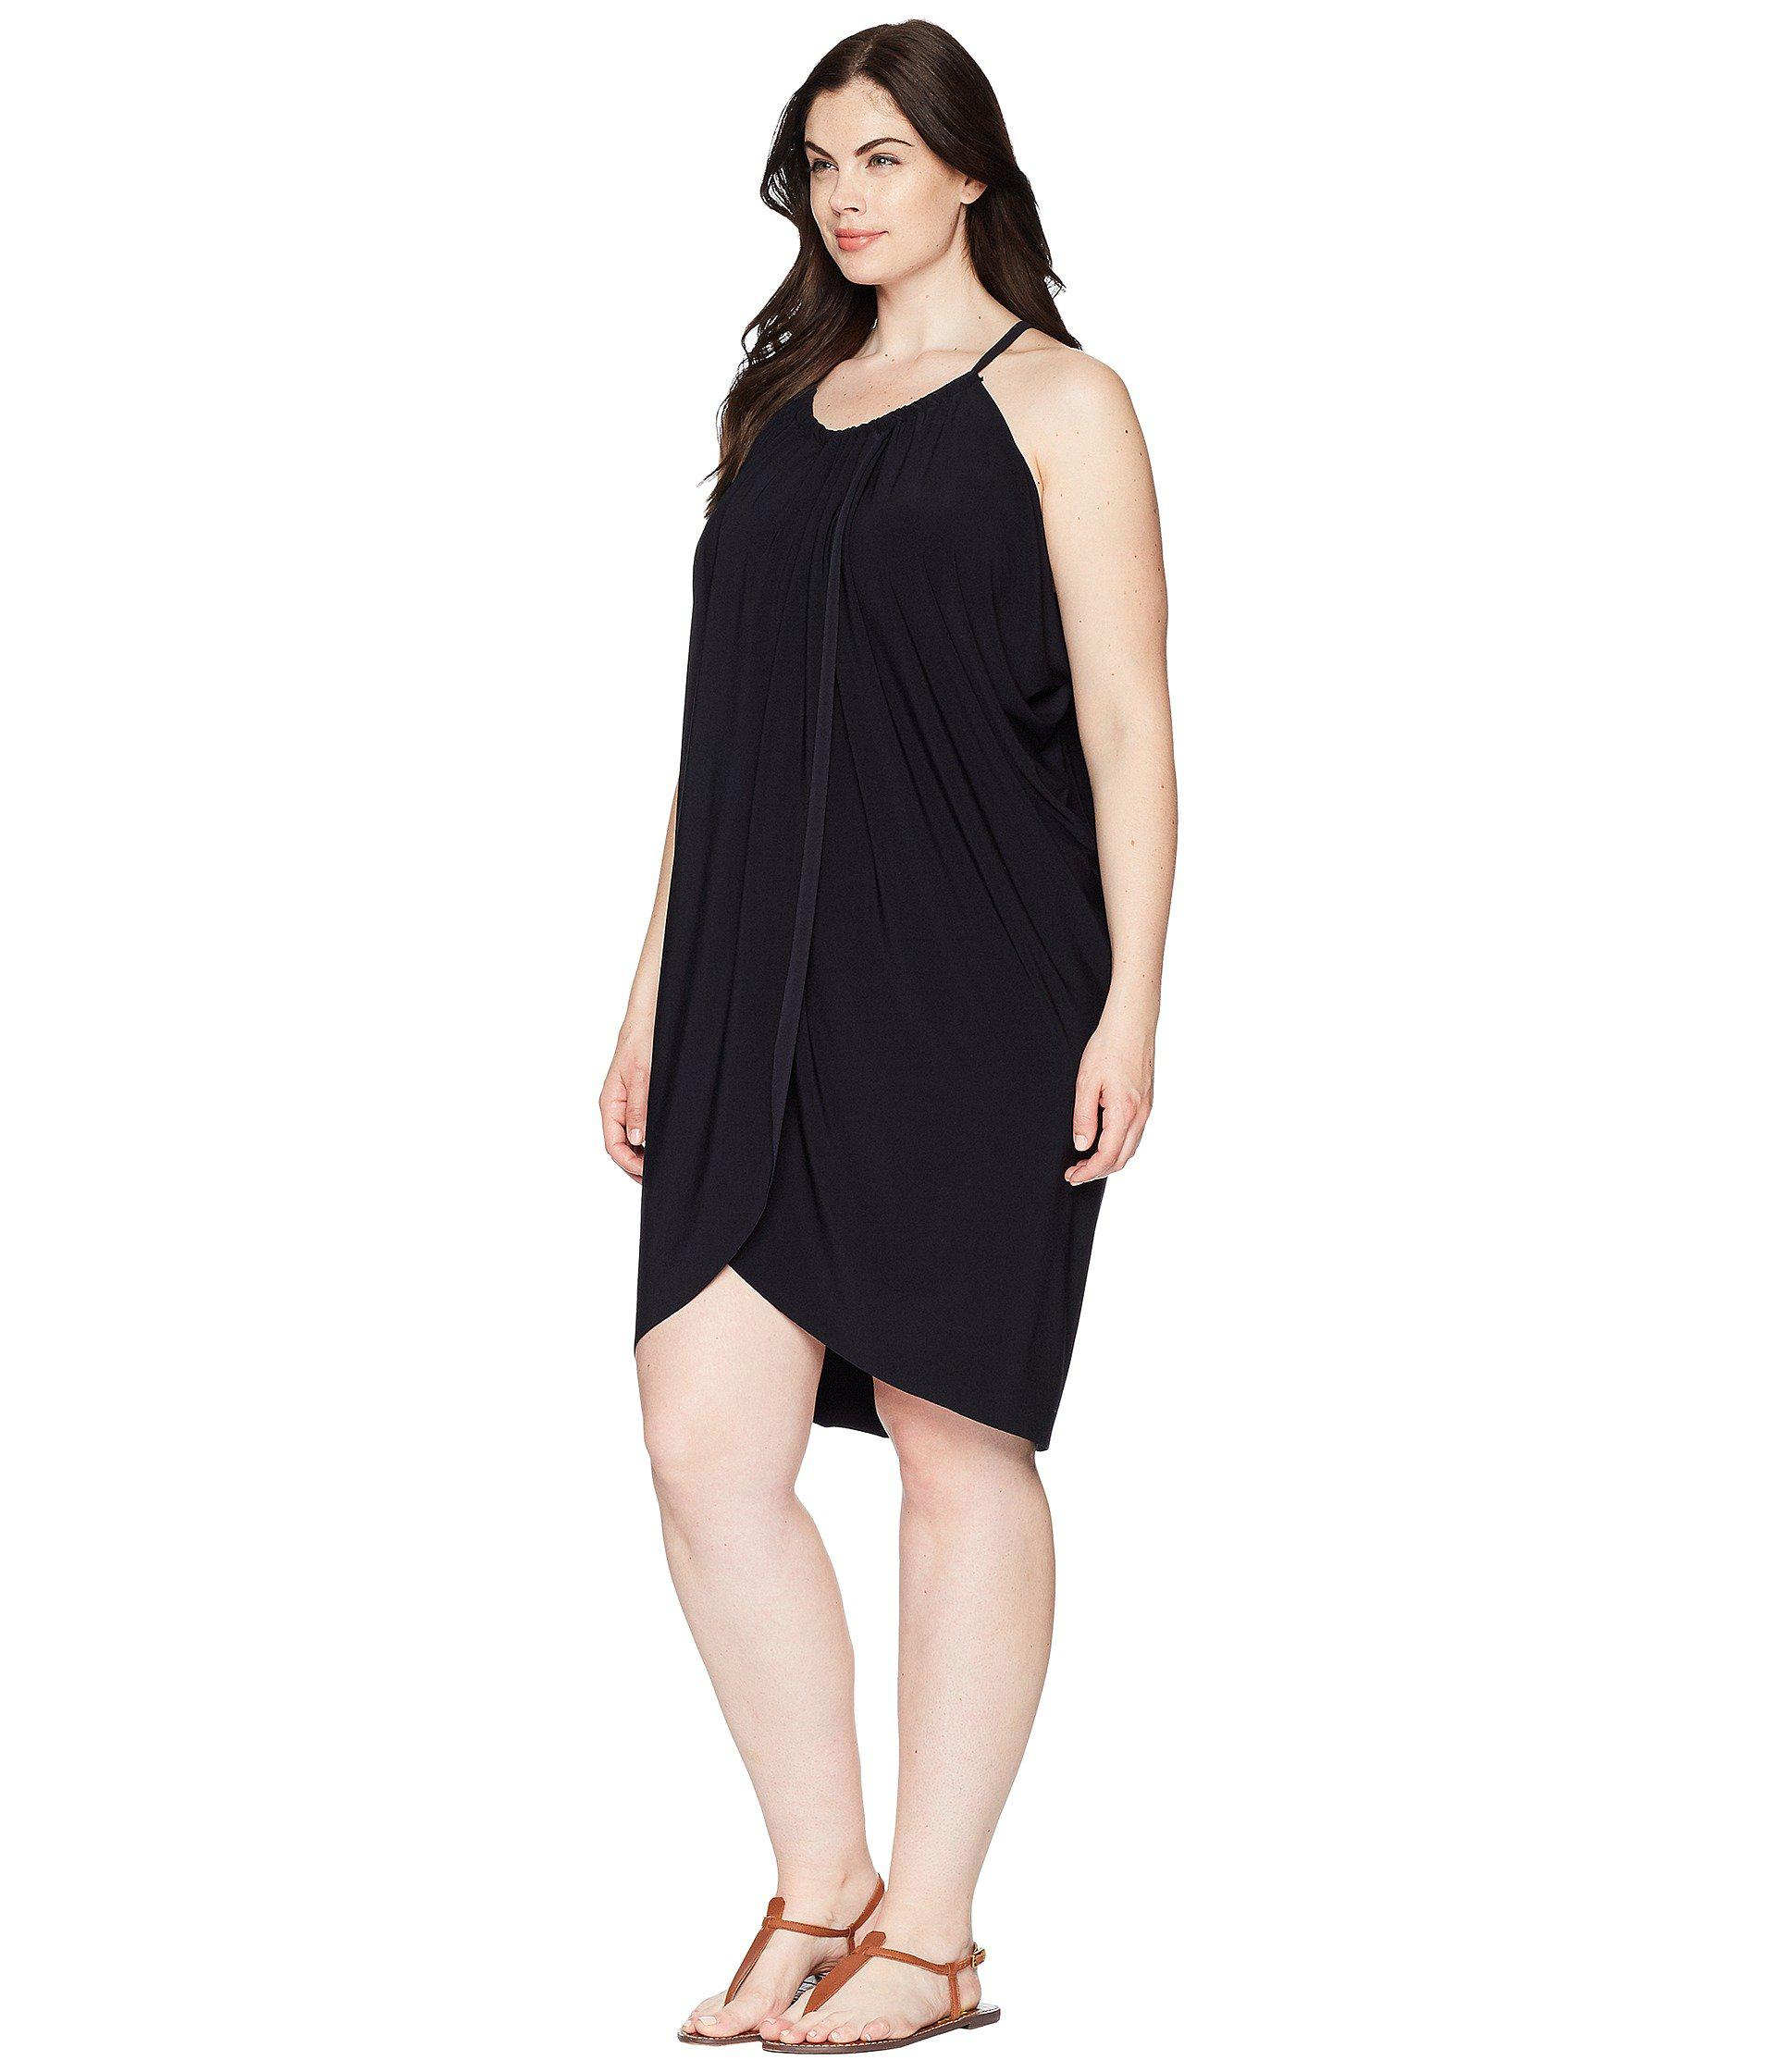 520c205d6d633 Lyst - Magicsuit Plus Size Draped Cover-up in Black